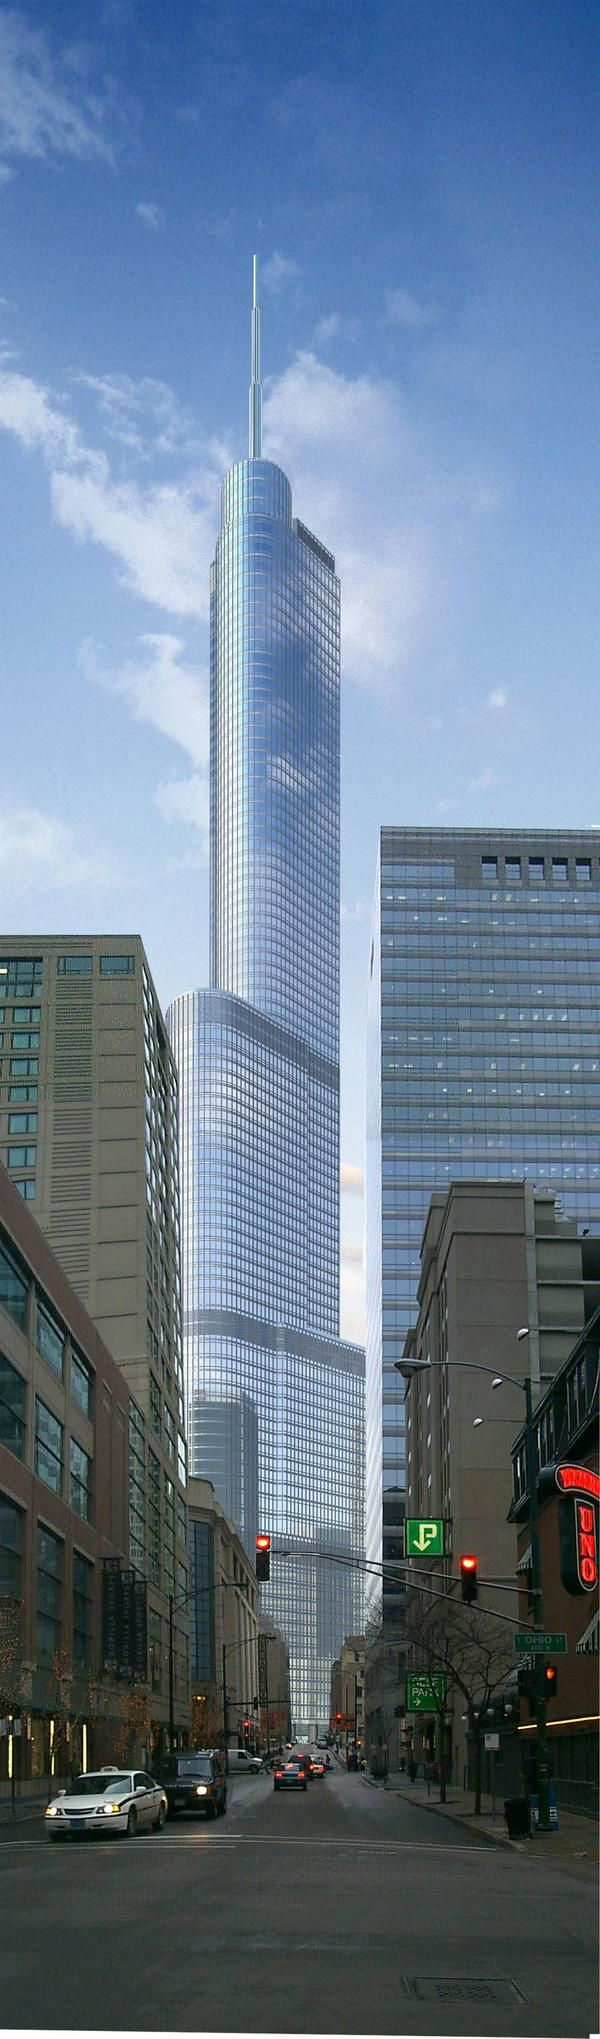 CHICAGO: Trump Tower ~ my home when visiting..